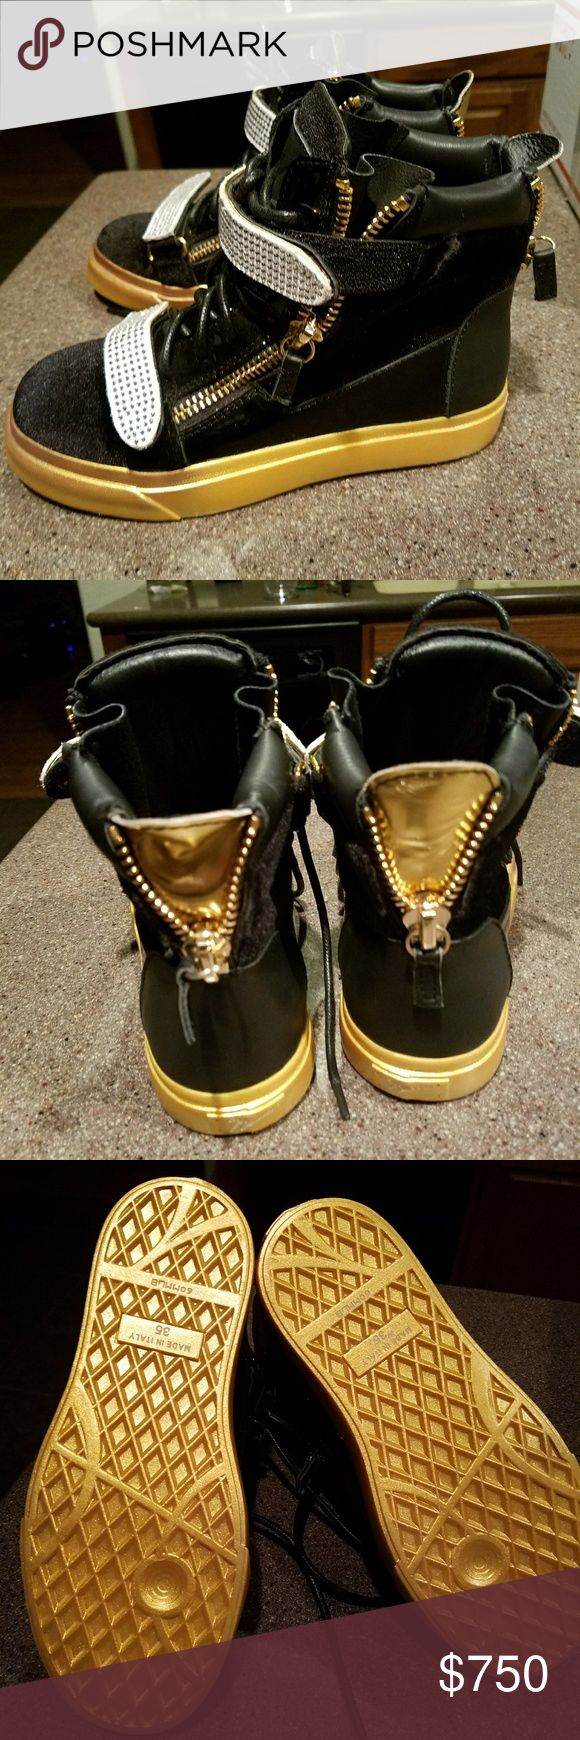 Giuseppe zonatti sneakers NEW WITHOUT BOX High top suede and leather,Italian made.Rare color ,WILL consider trade for bag set of equal value not trade value Giuseppe Zanotti Shoes Athletic Shoes